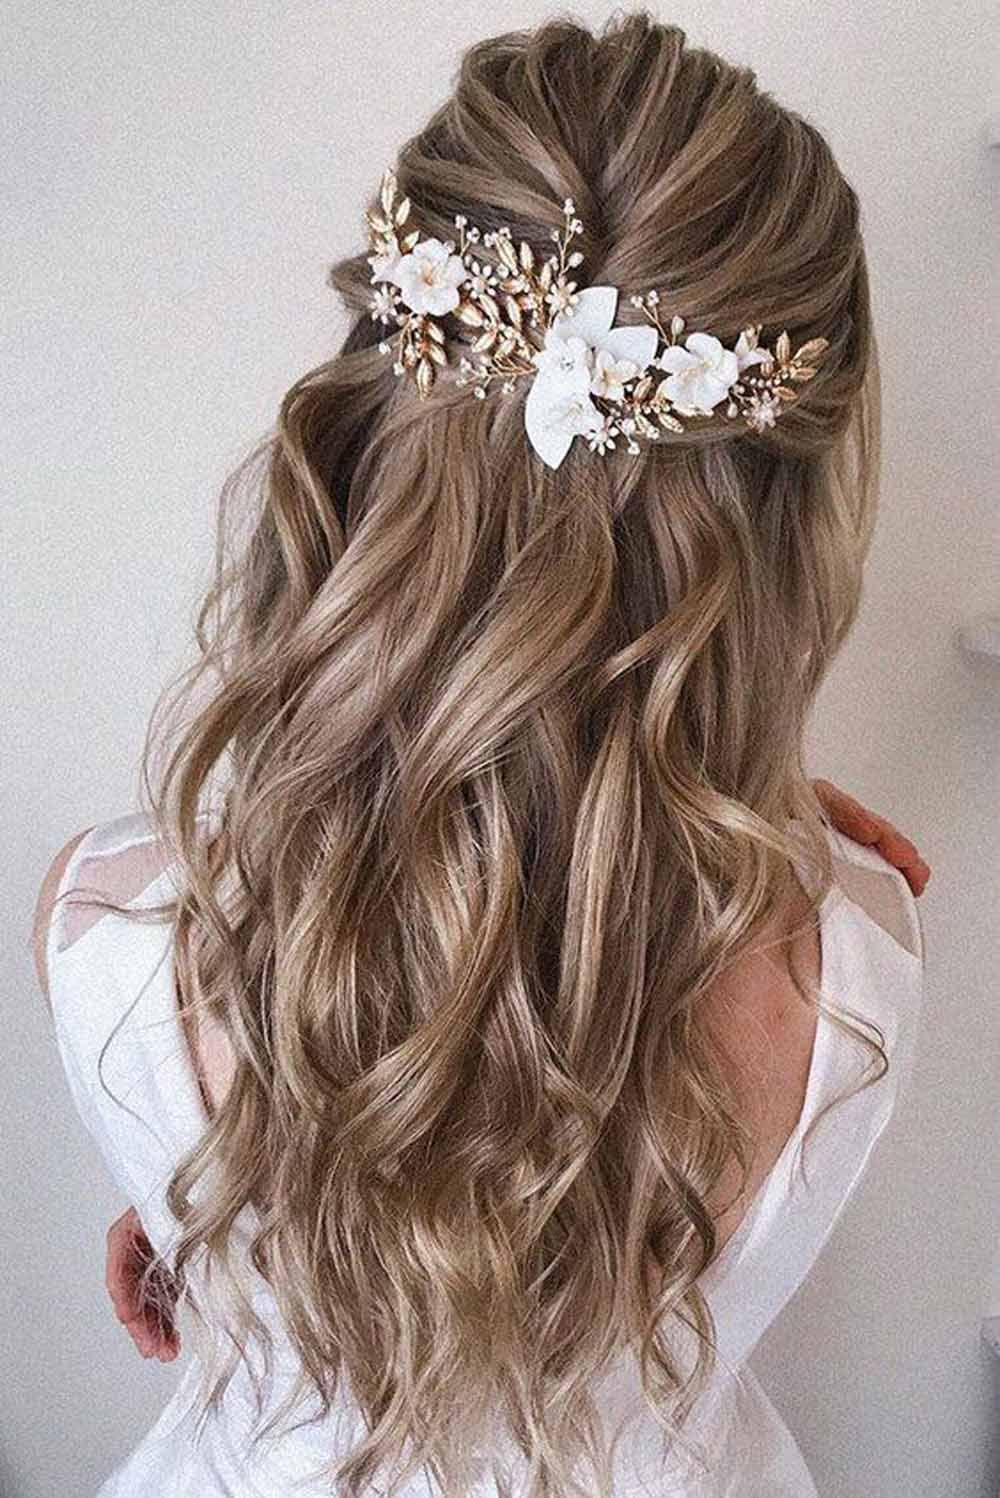 7 Very Beautiful Half Up Half Down Hairstyles To Wear On Your